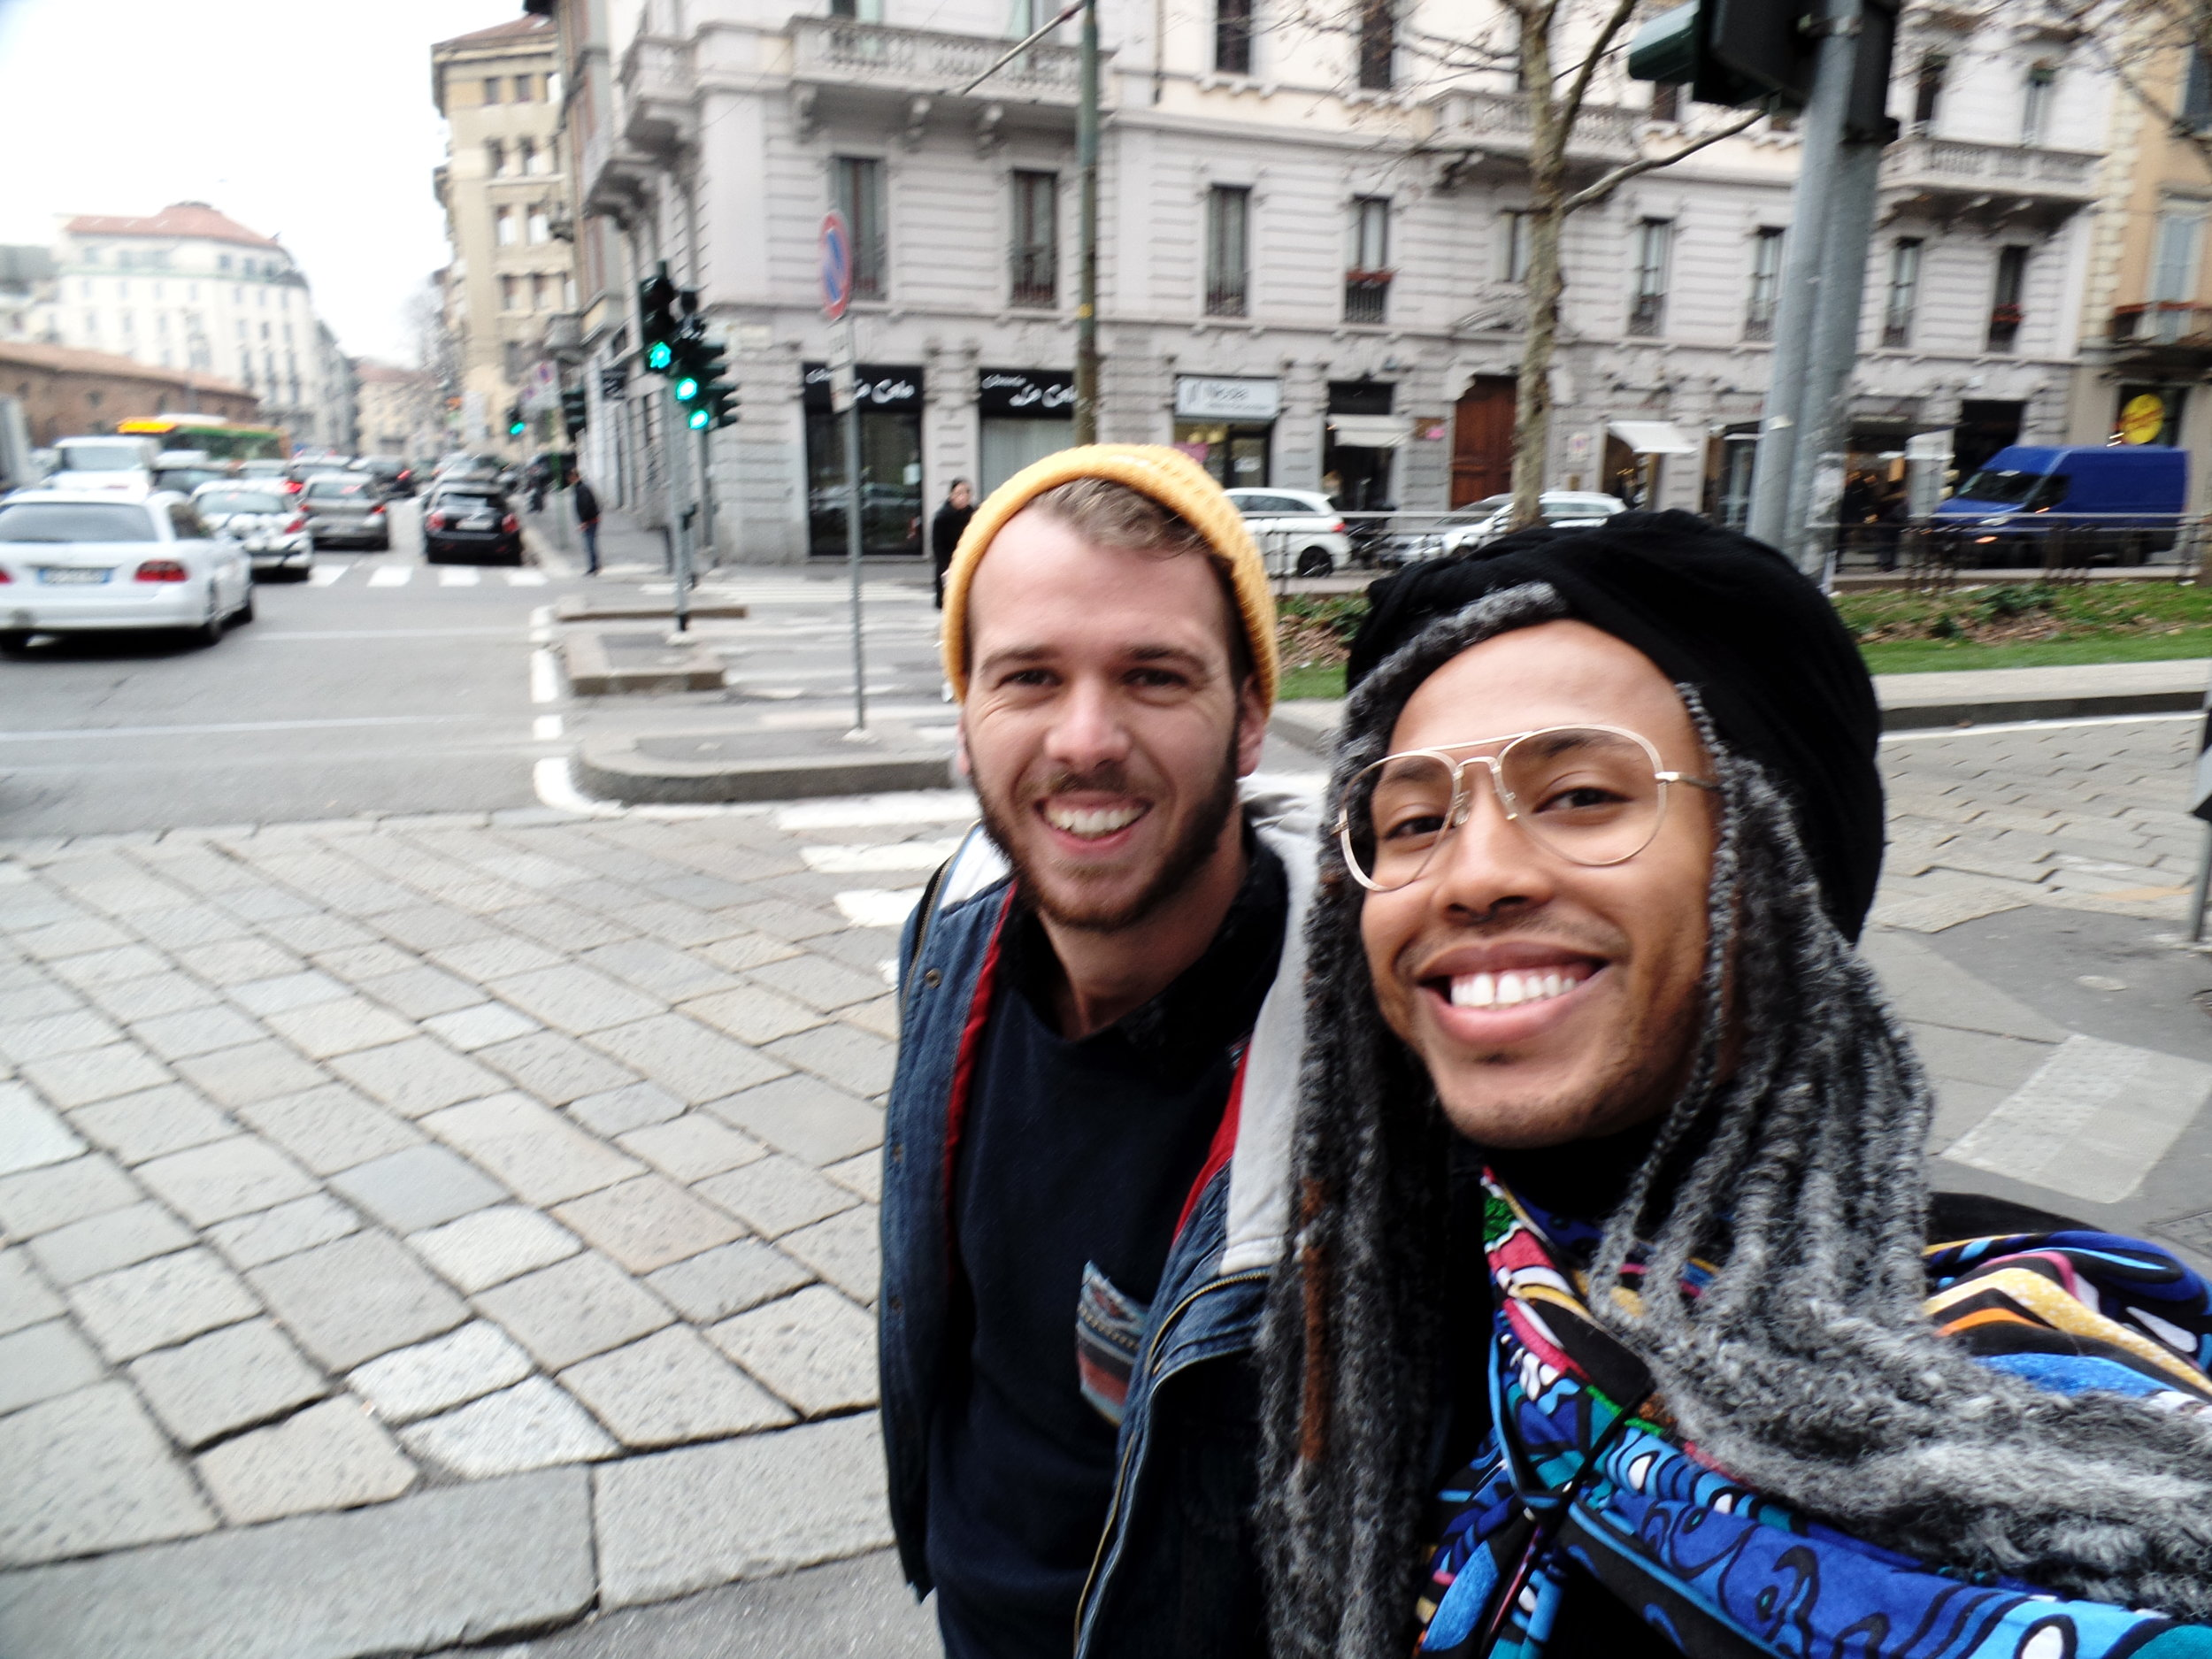 I MET AN AWESOME FRIEND NAMED  MITCH TREDENICK . HE TOLD ME THAT AFTER TRAVELING FOR A YEARS THE PLACES START TO LOOK SIMILAR BUT THE PEOPLE YOU MEET THERE ARE WHAT WILL MAKE TRUE MEMORIES.